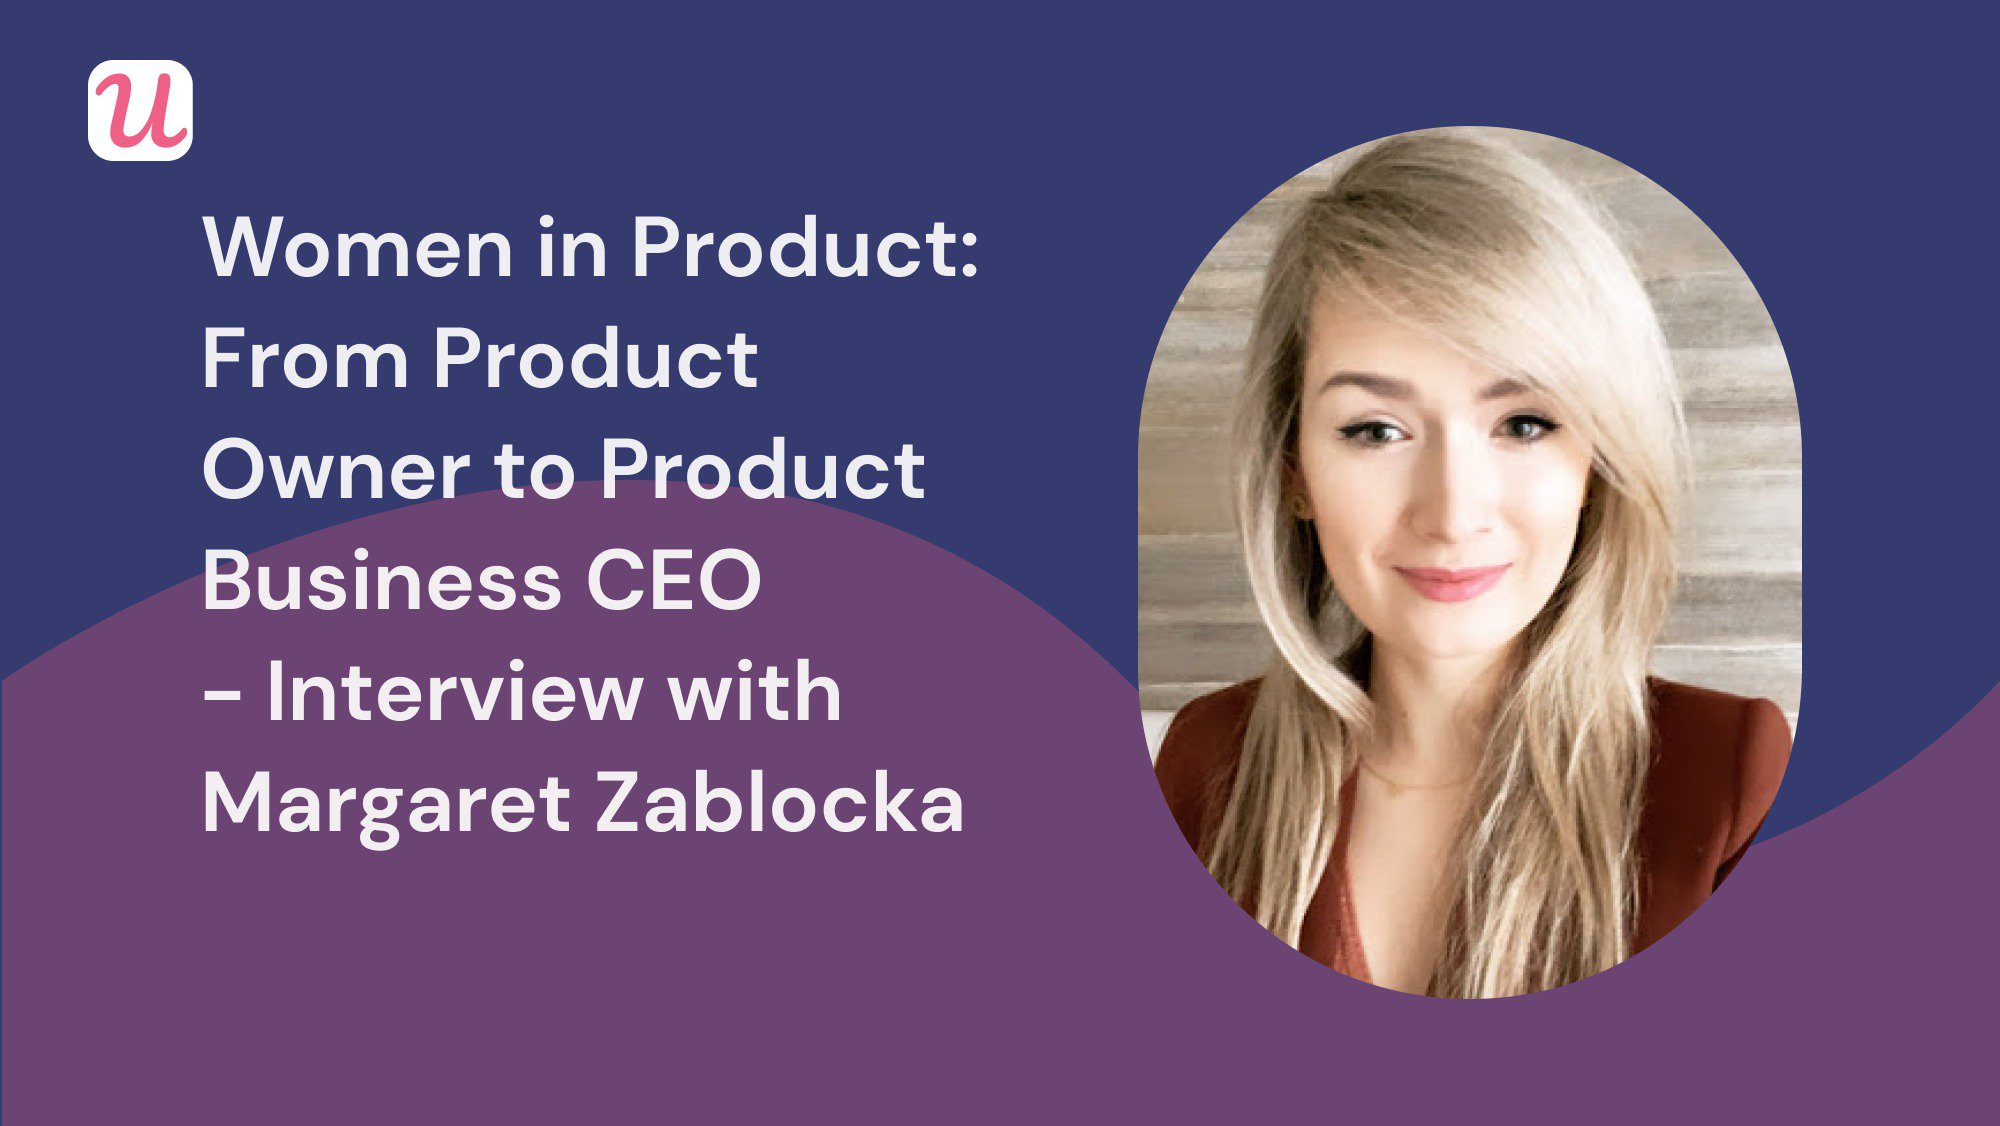 Women in Product: From Product Owner to Product Business CEO - How Margaret Zablocka pulled Onoco off the ground against all odds